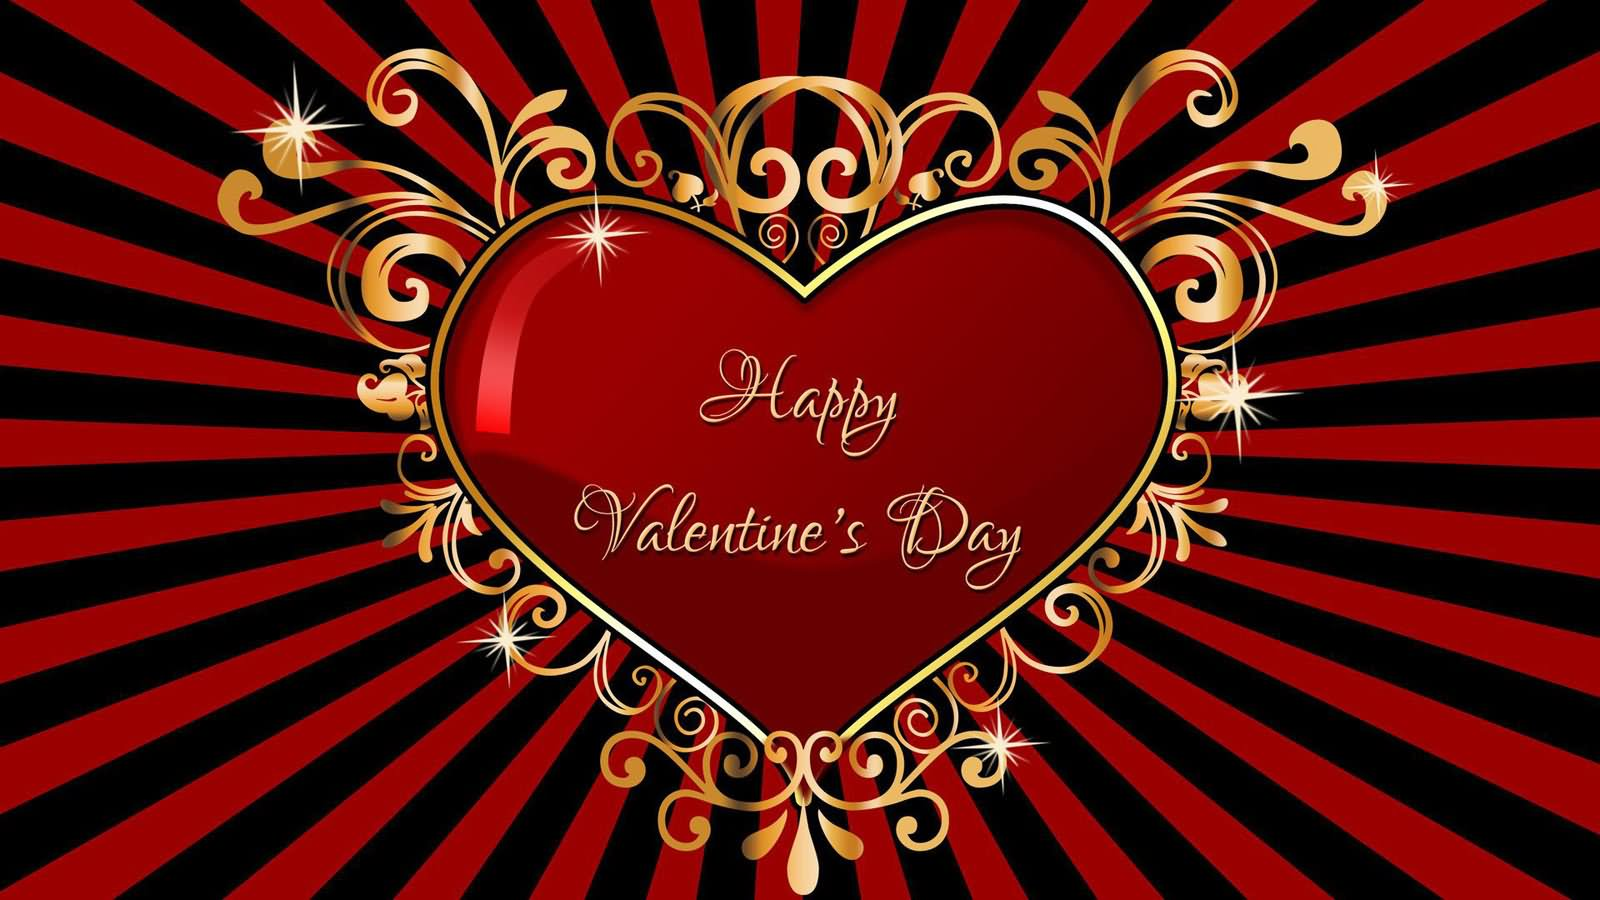 Awesome Happy Valentines Day Heart Wishes Picture